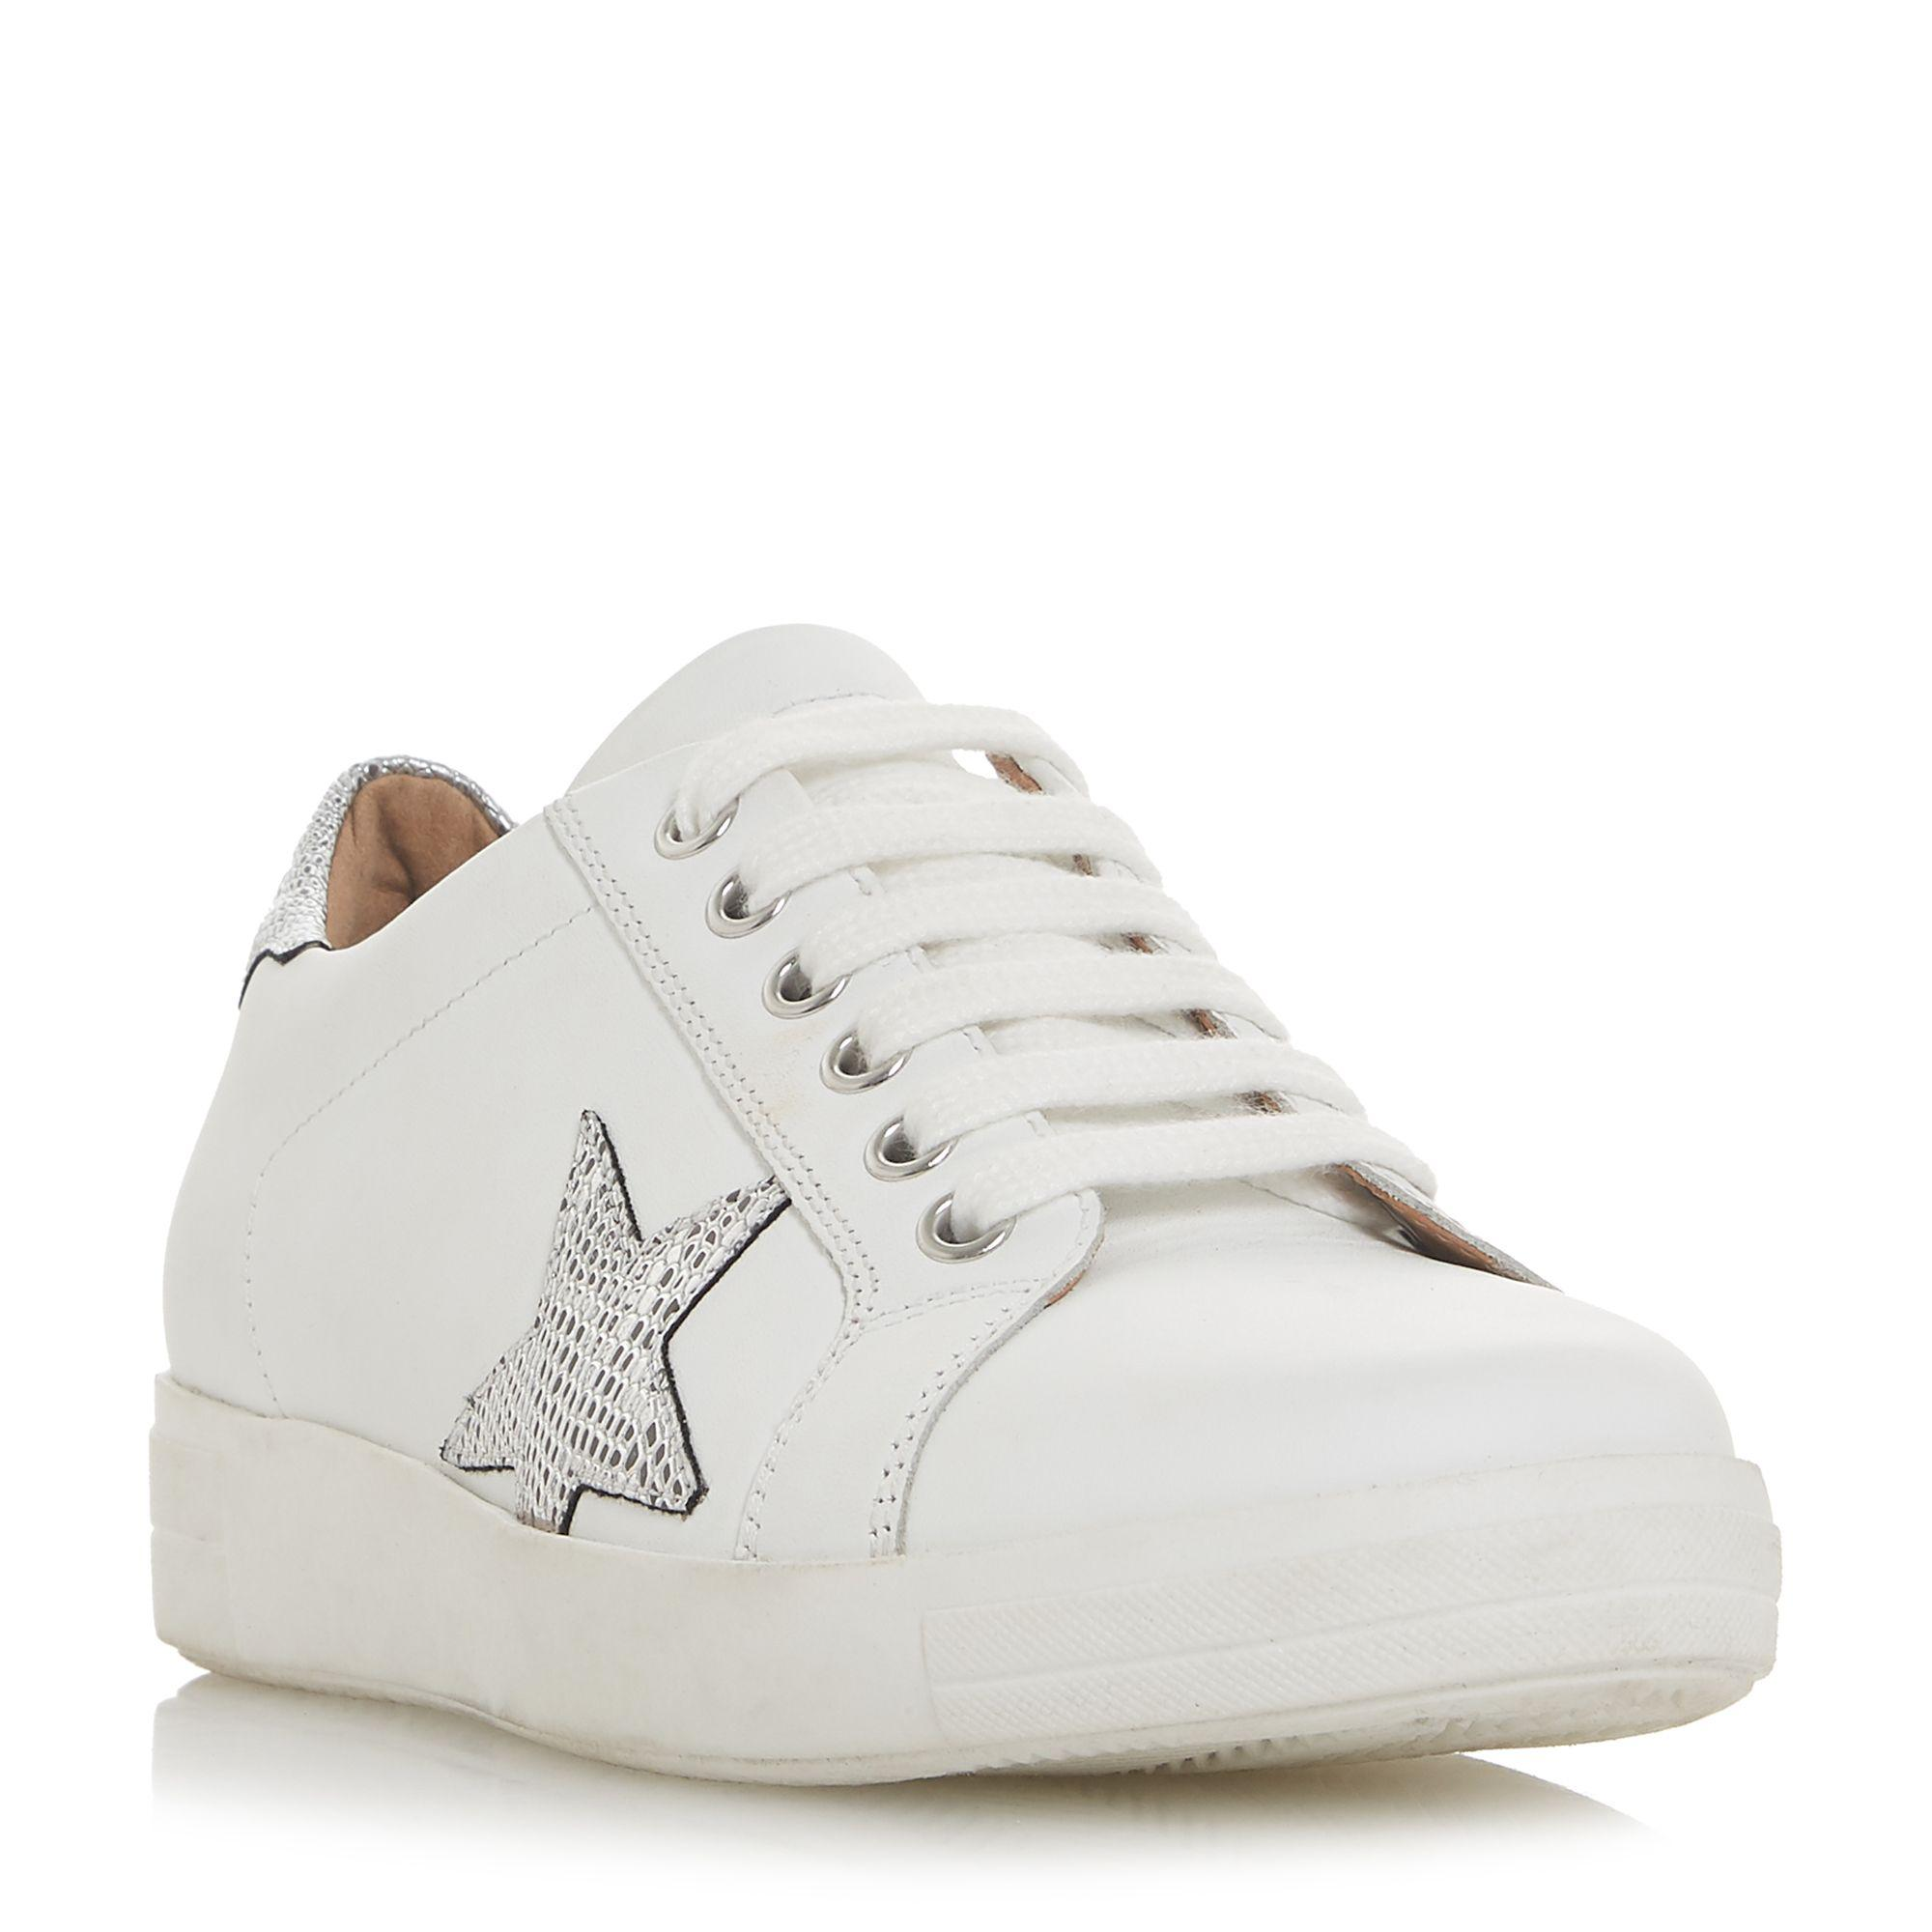 be728f93c388 Dune White Leather 'edris' Lace Up Trainers in White - Lyst